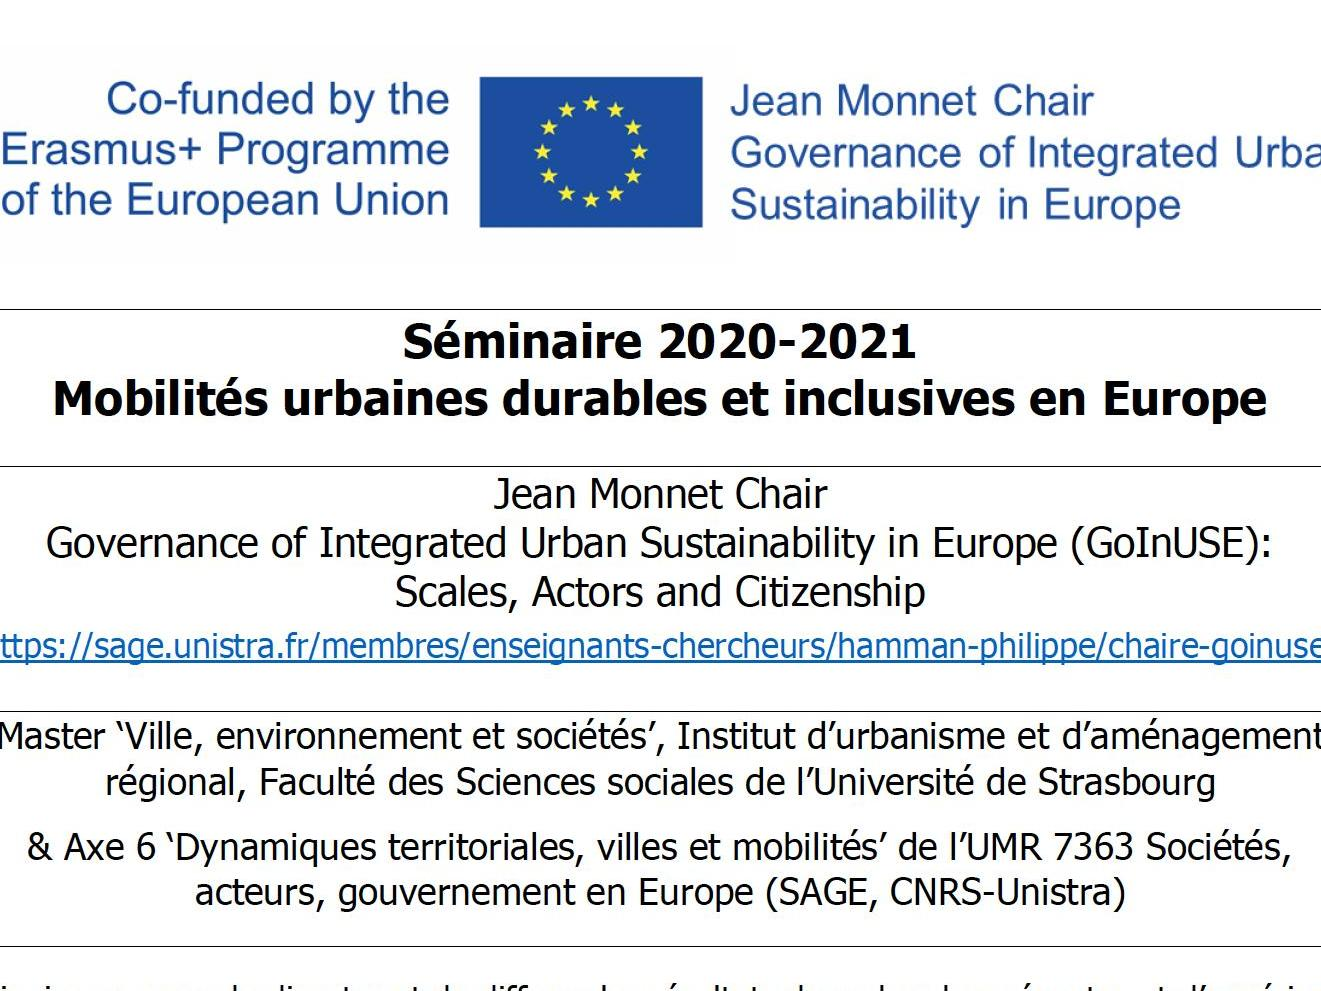 Séminaire 2020-2021 Mobilités urbaines durables et inclusives en Europe Jean Monnet Chair Governance of Integrated Urban Sustainability in Europe (GoInUSE): Scales, Actors and Citizenship